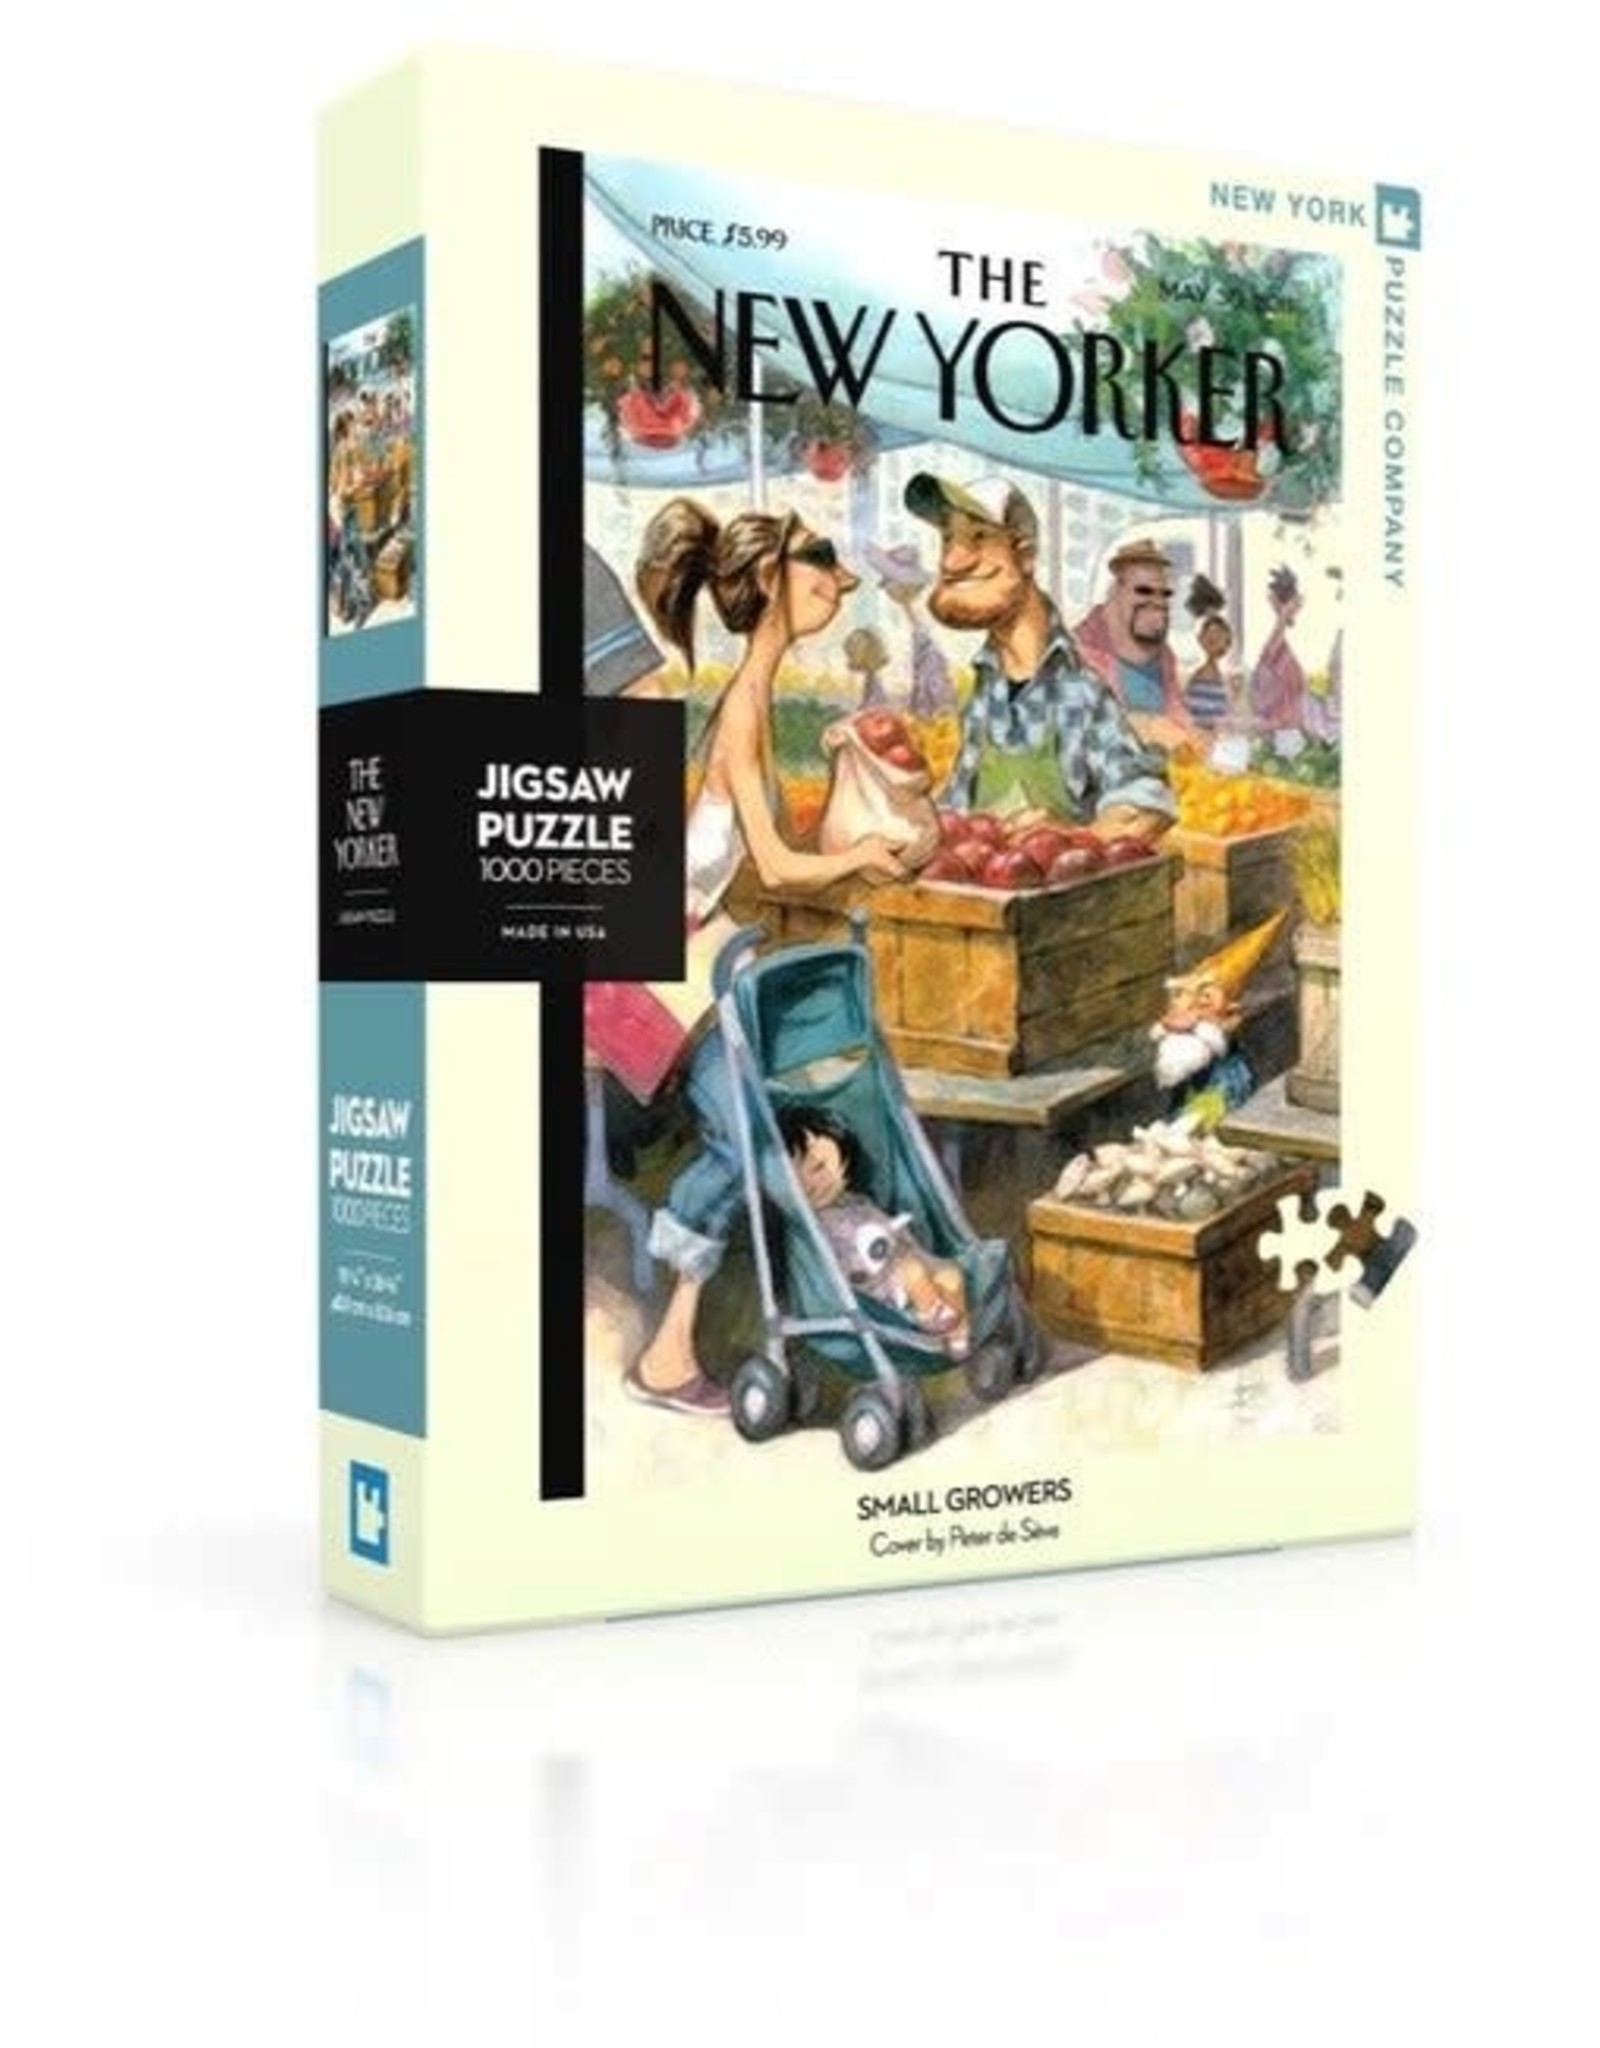 Small Growers Puzzle, 1000 pieces